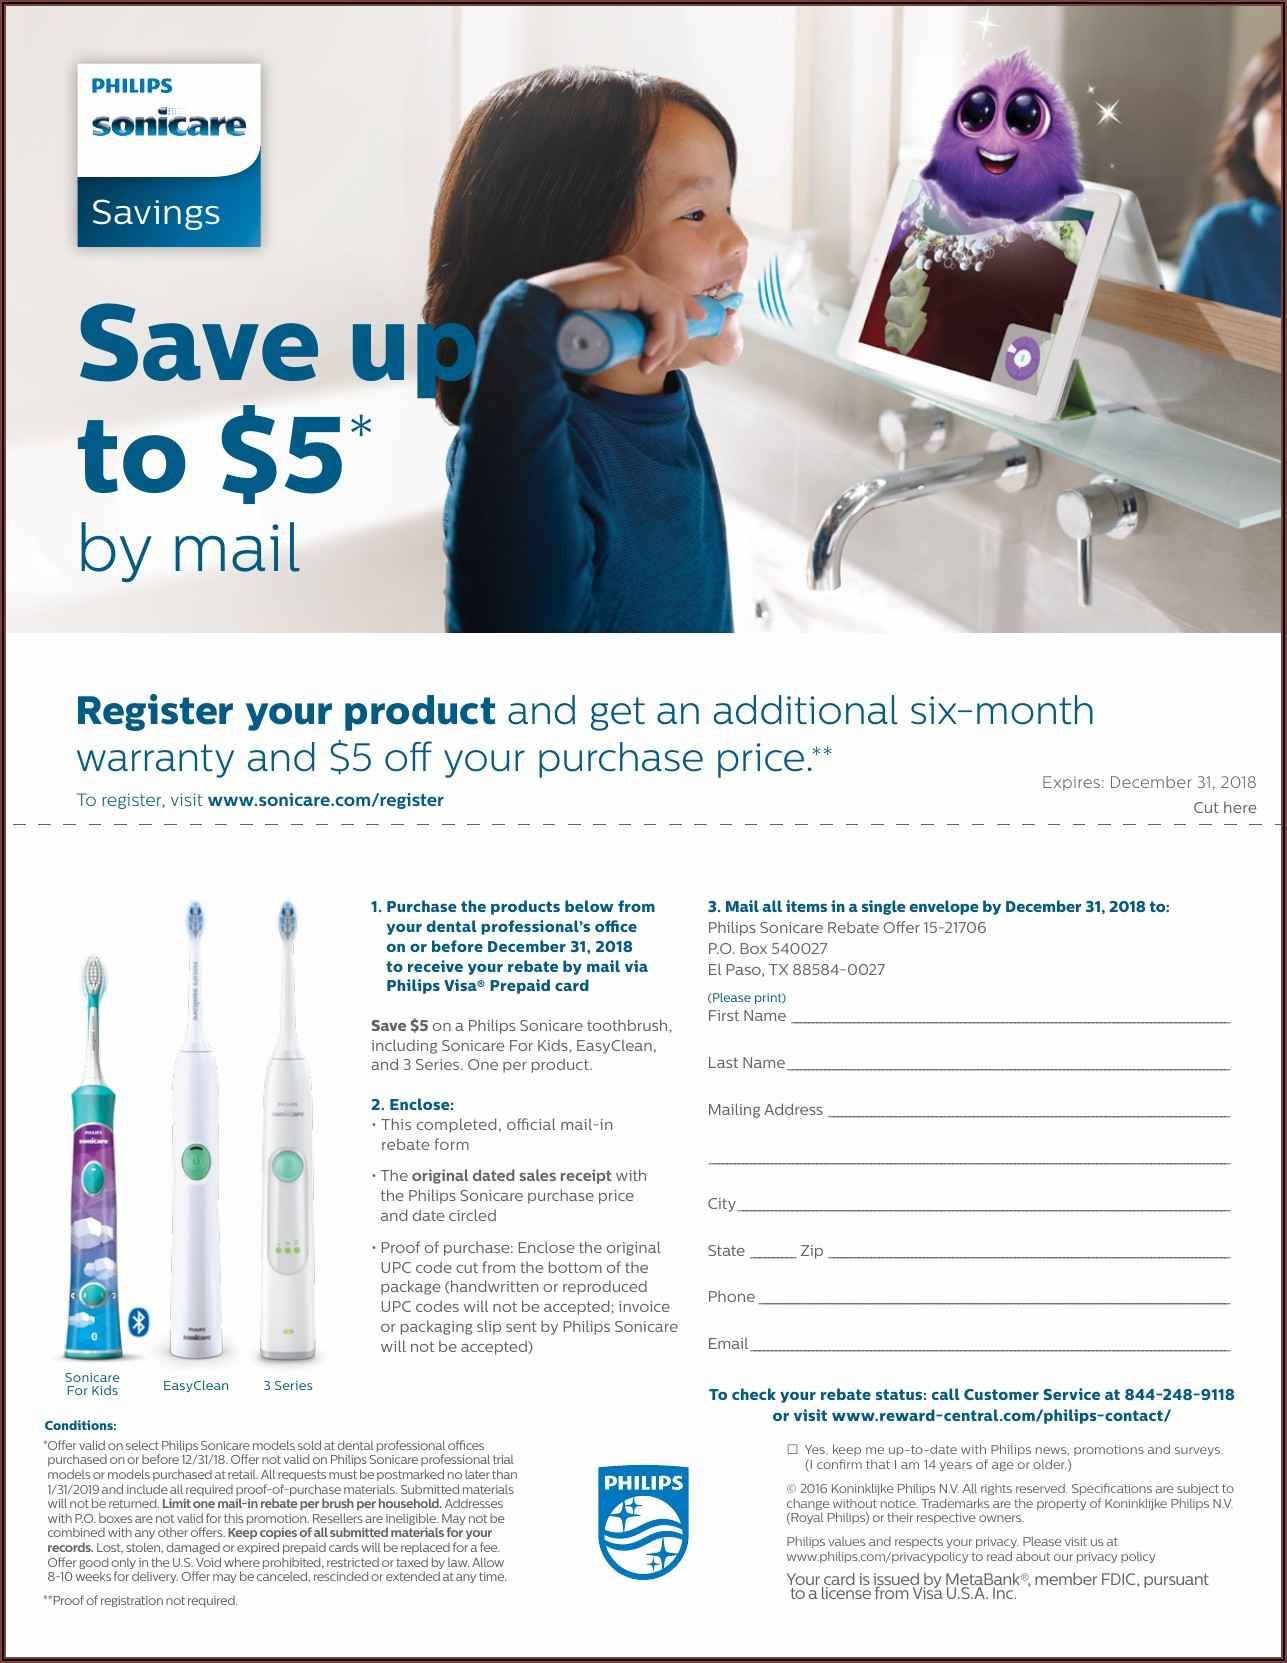 Philips Sonicare Rebate Form 2020 Kohl's